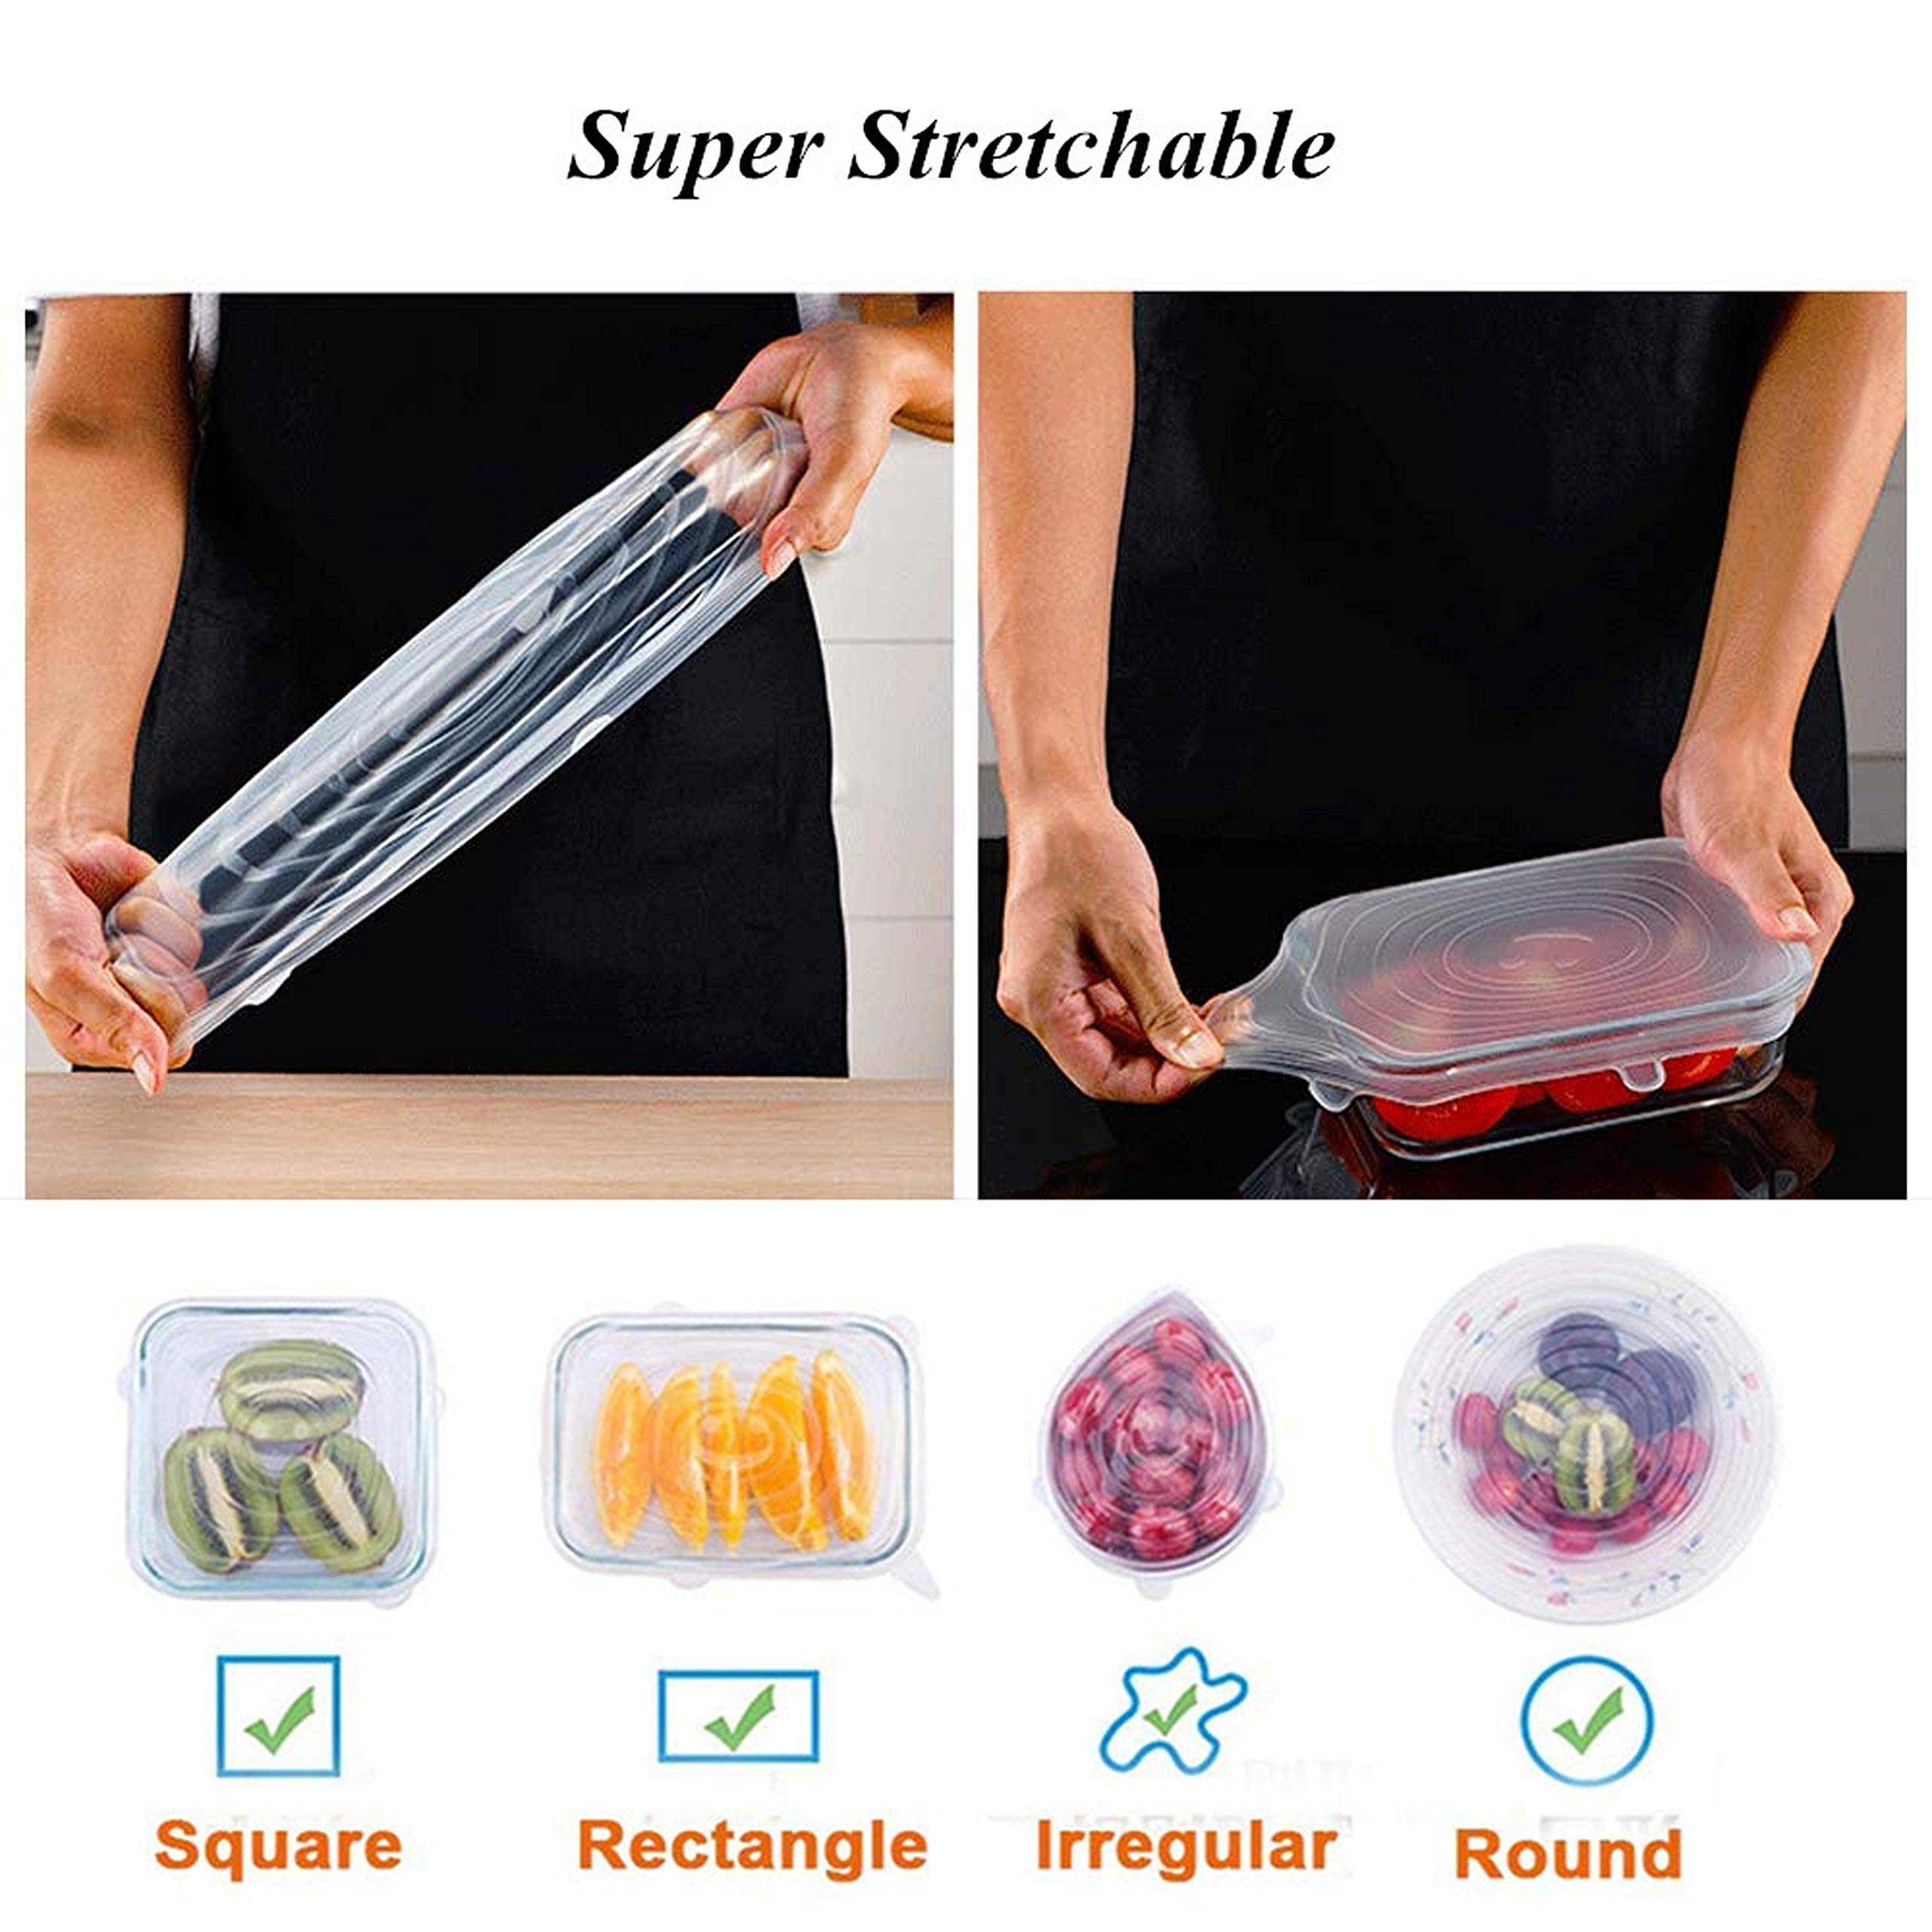 Silicone Stretch Food Covers Lids - Various Sizes Reusable Durable and Expandable Containers Preservative Wrappers for Fruits & Vegetables or Cups, Bowls, Mugs, Dishes and Cans (BLUE+WHITE) by Be-one (Image #5)